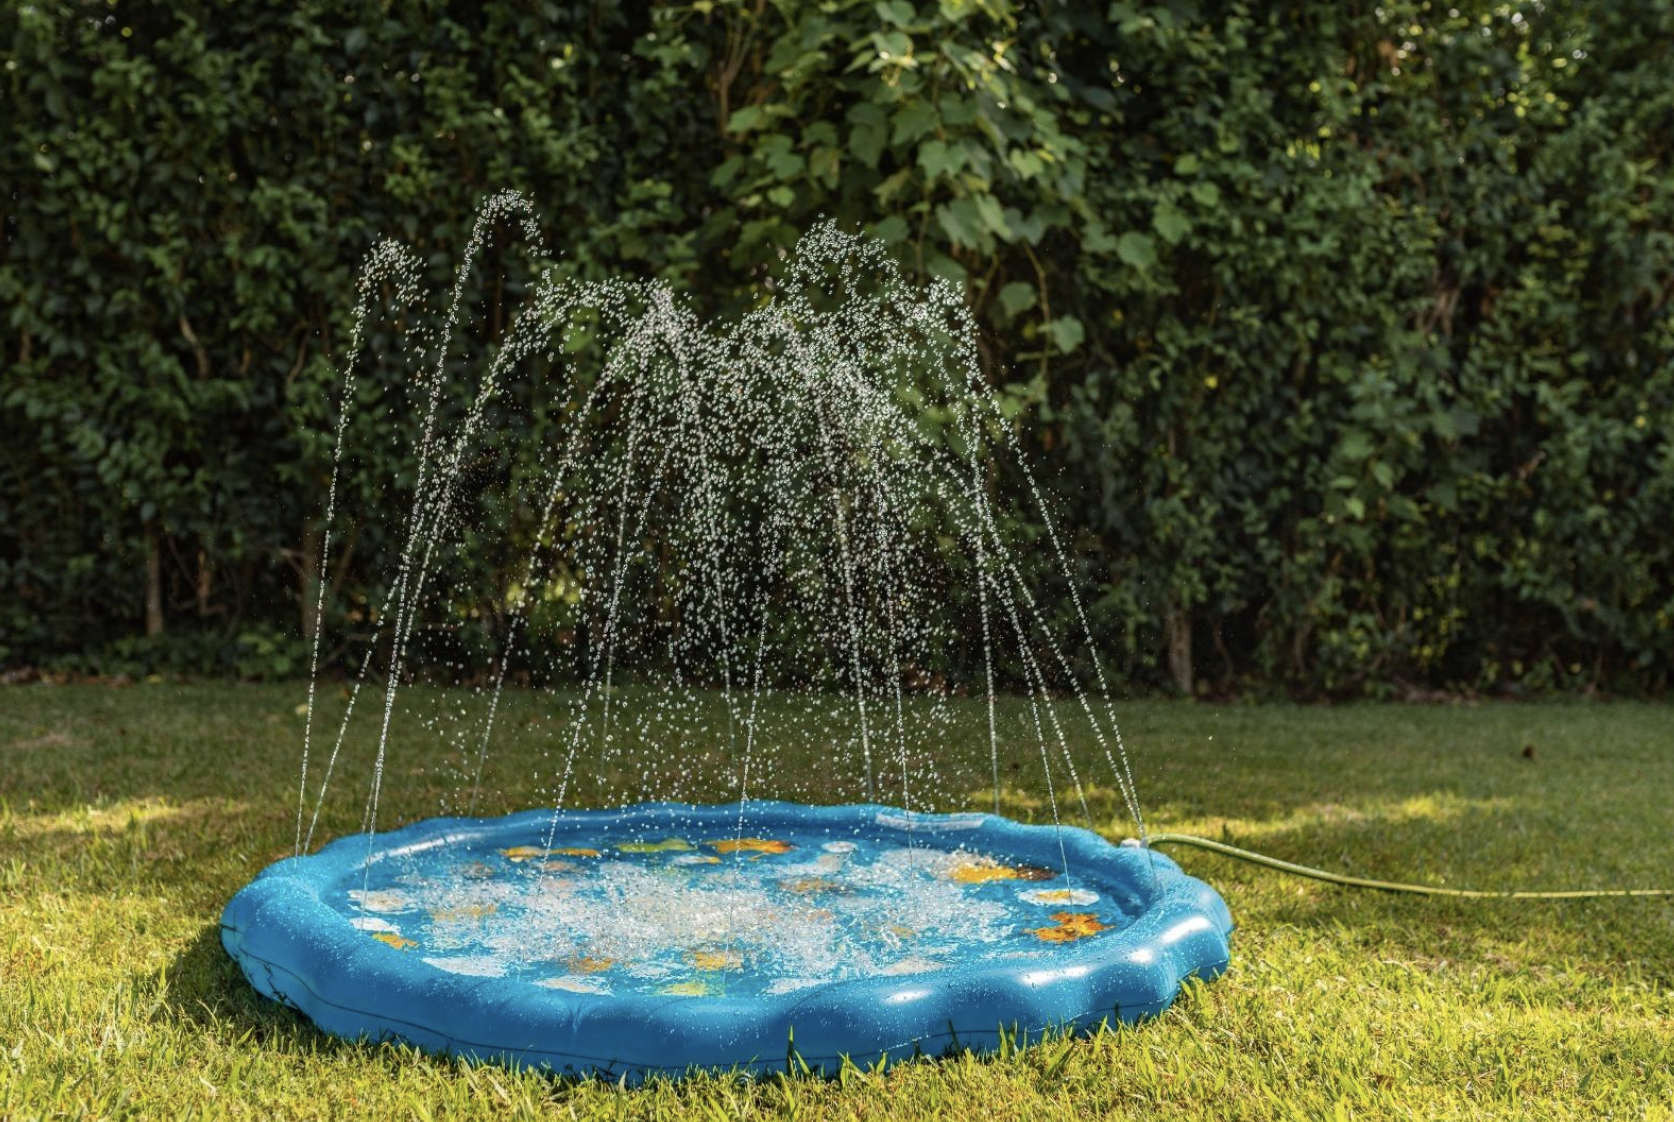 A circular waterproof pad with holes all around it for water to spout out of once someone installs a hose into it